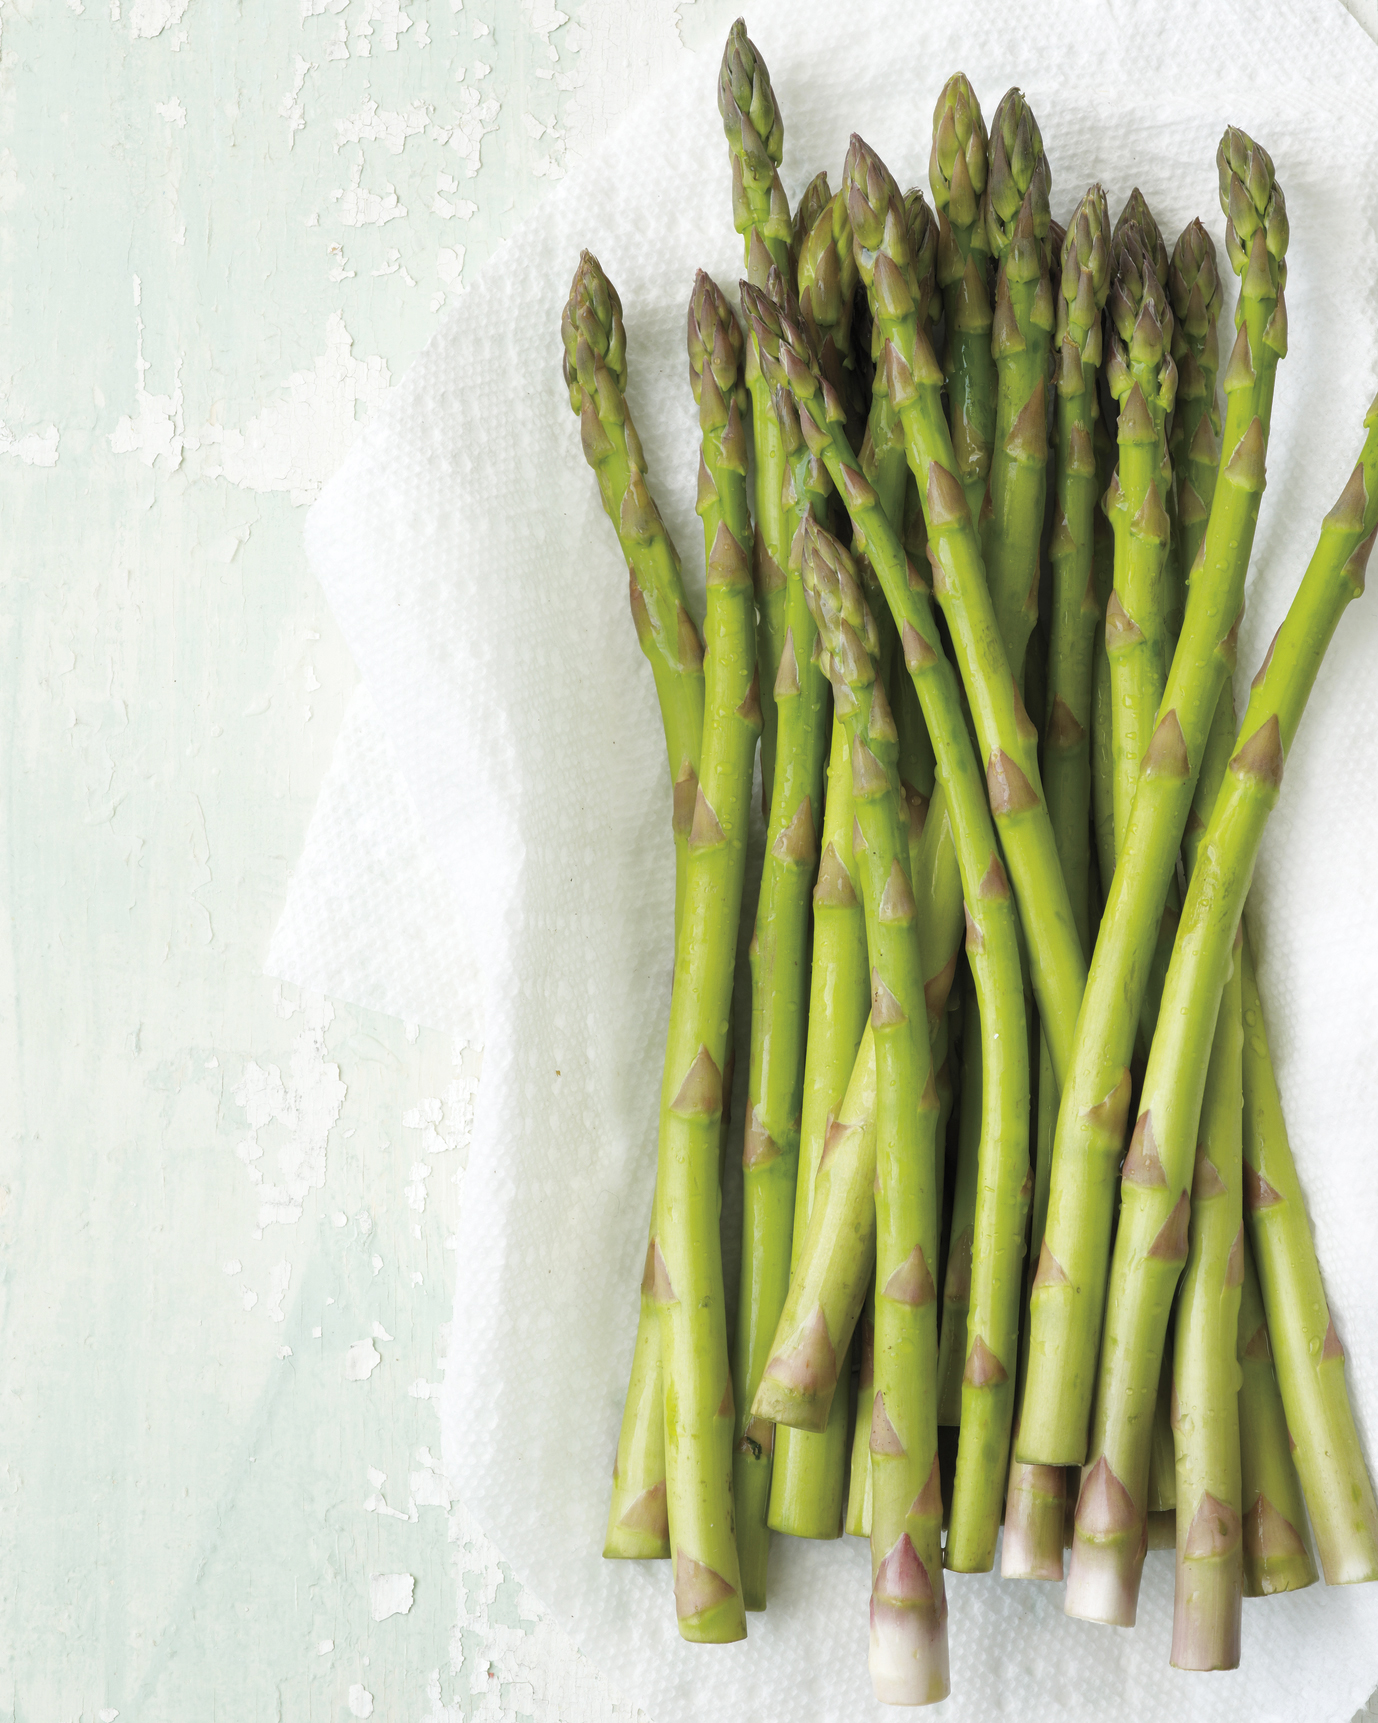 asparagus loose bunch